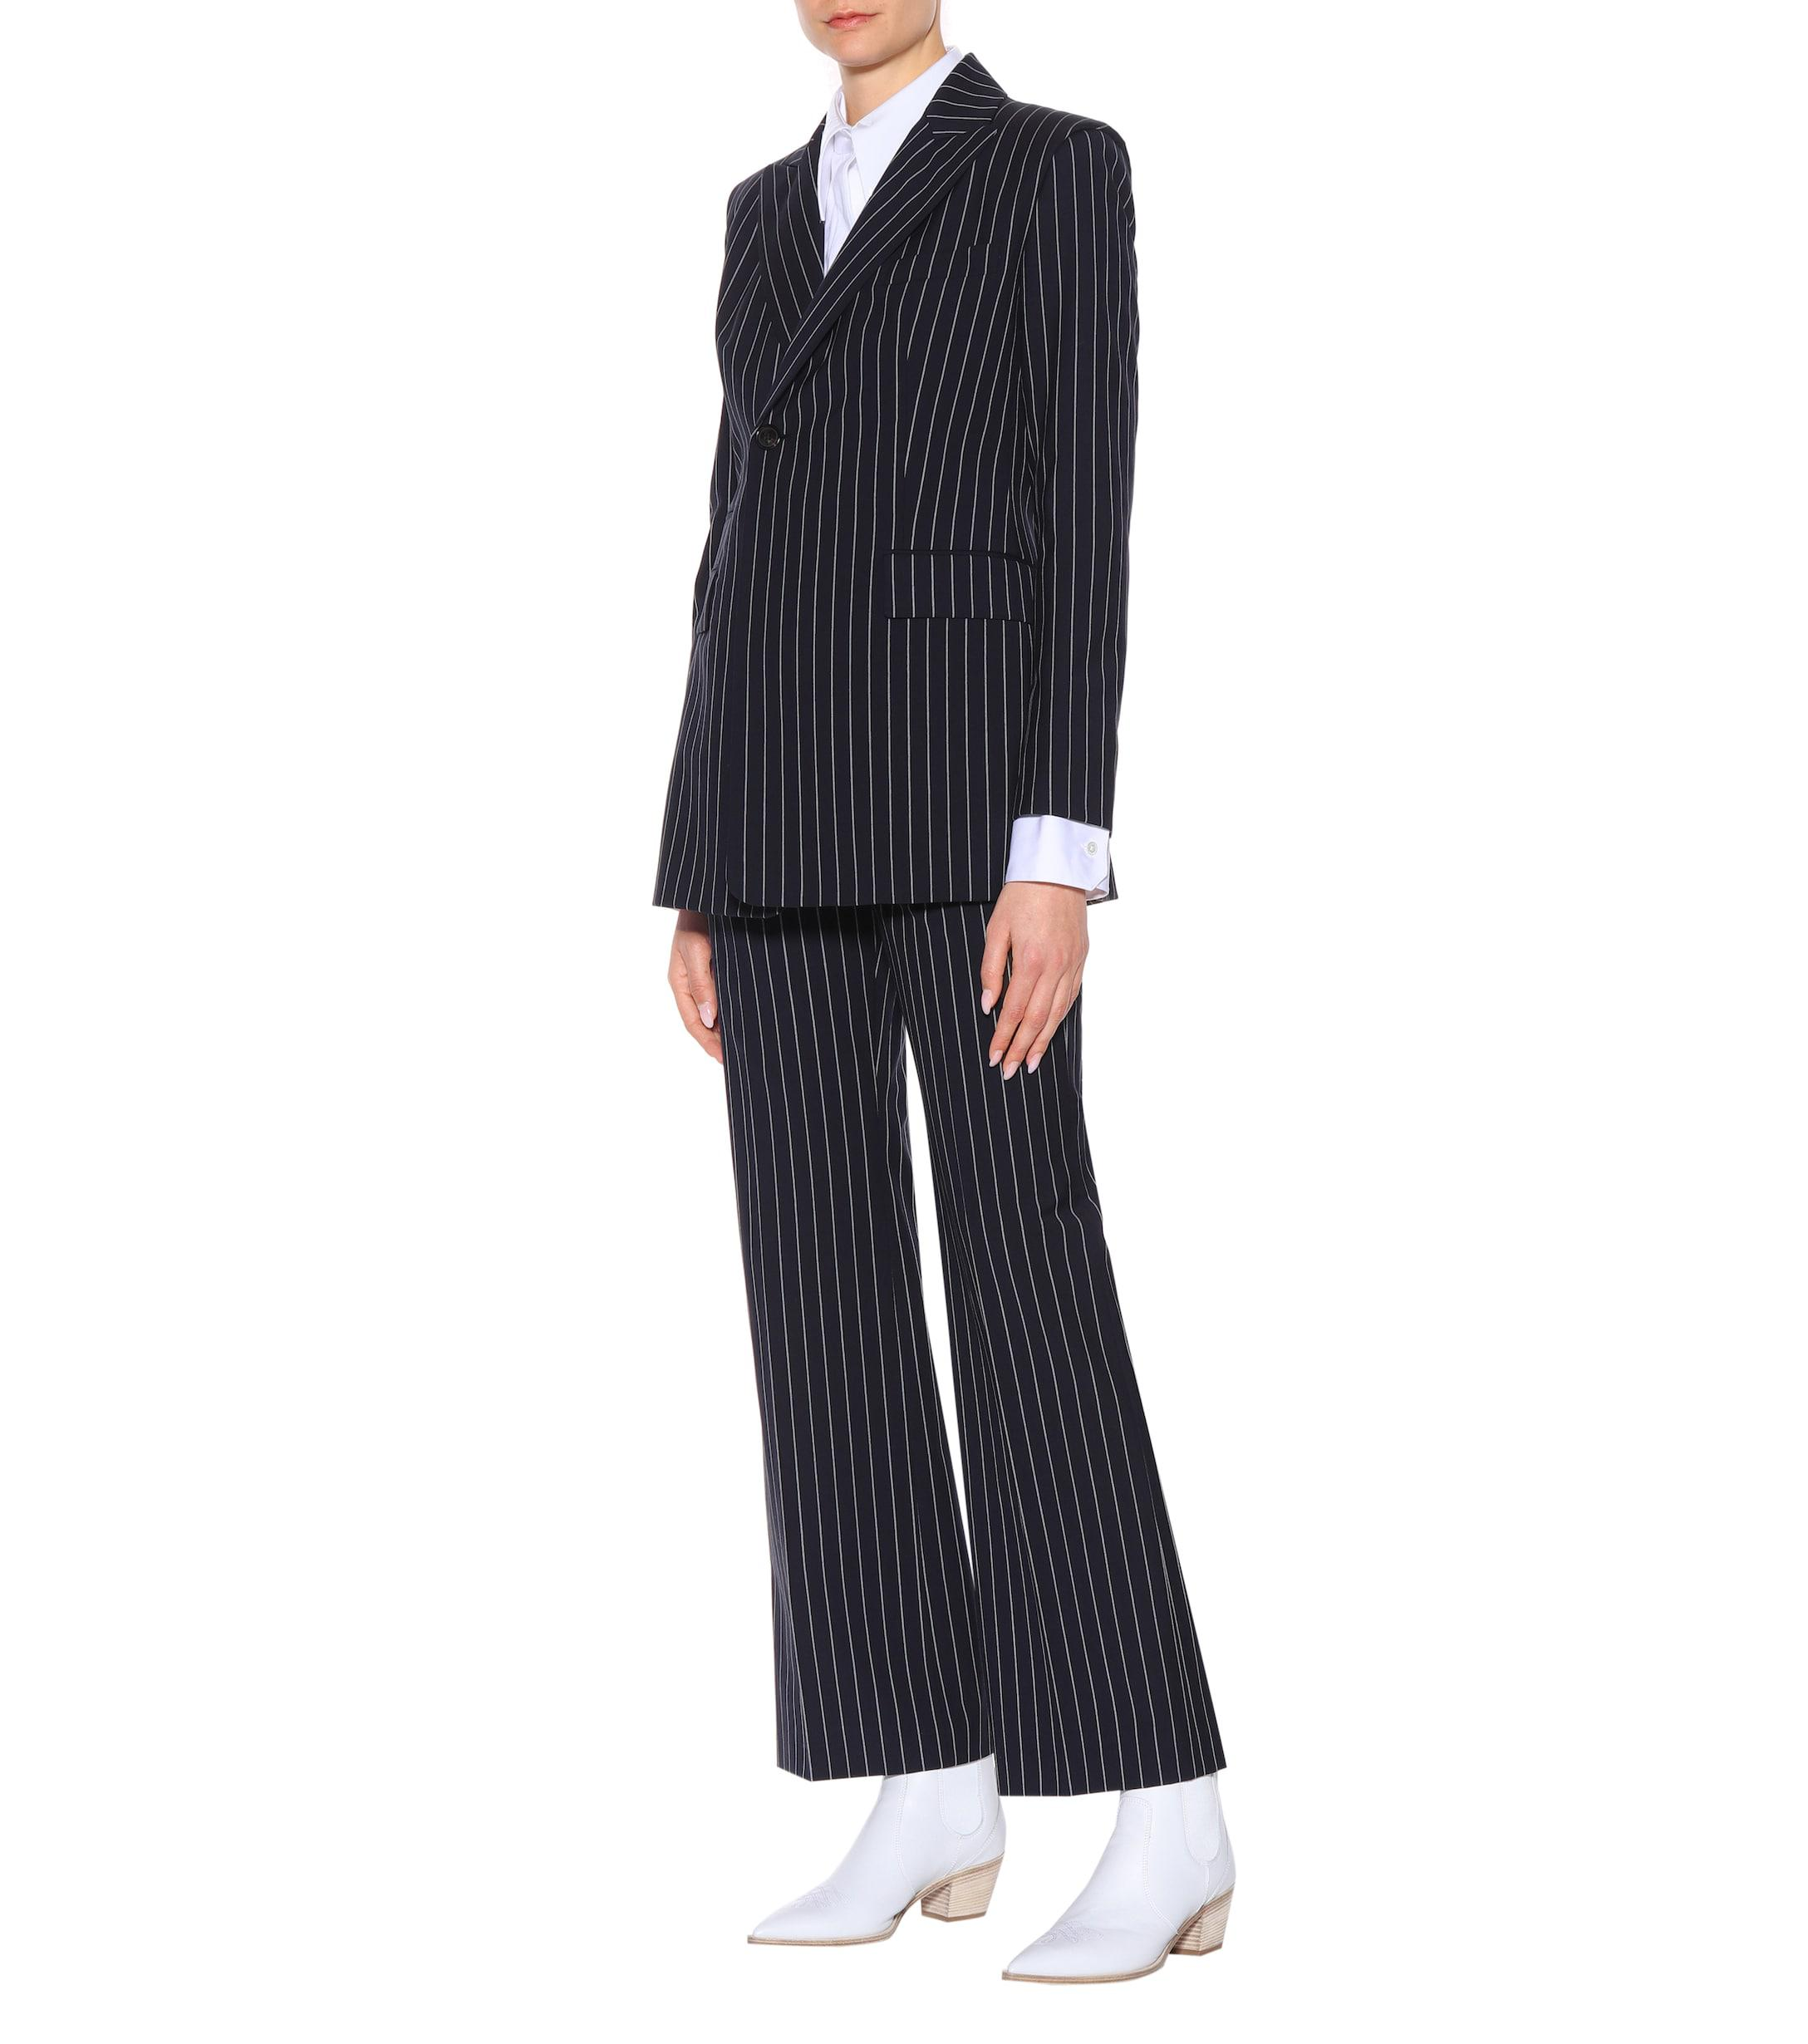 Pinstriped Lyst Blue Acne In Jezzy Blazer rdCWxeBo